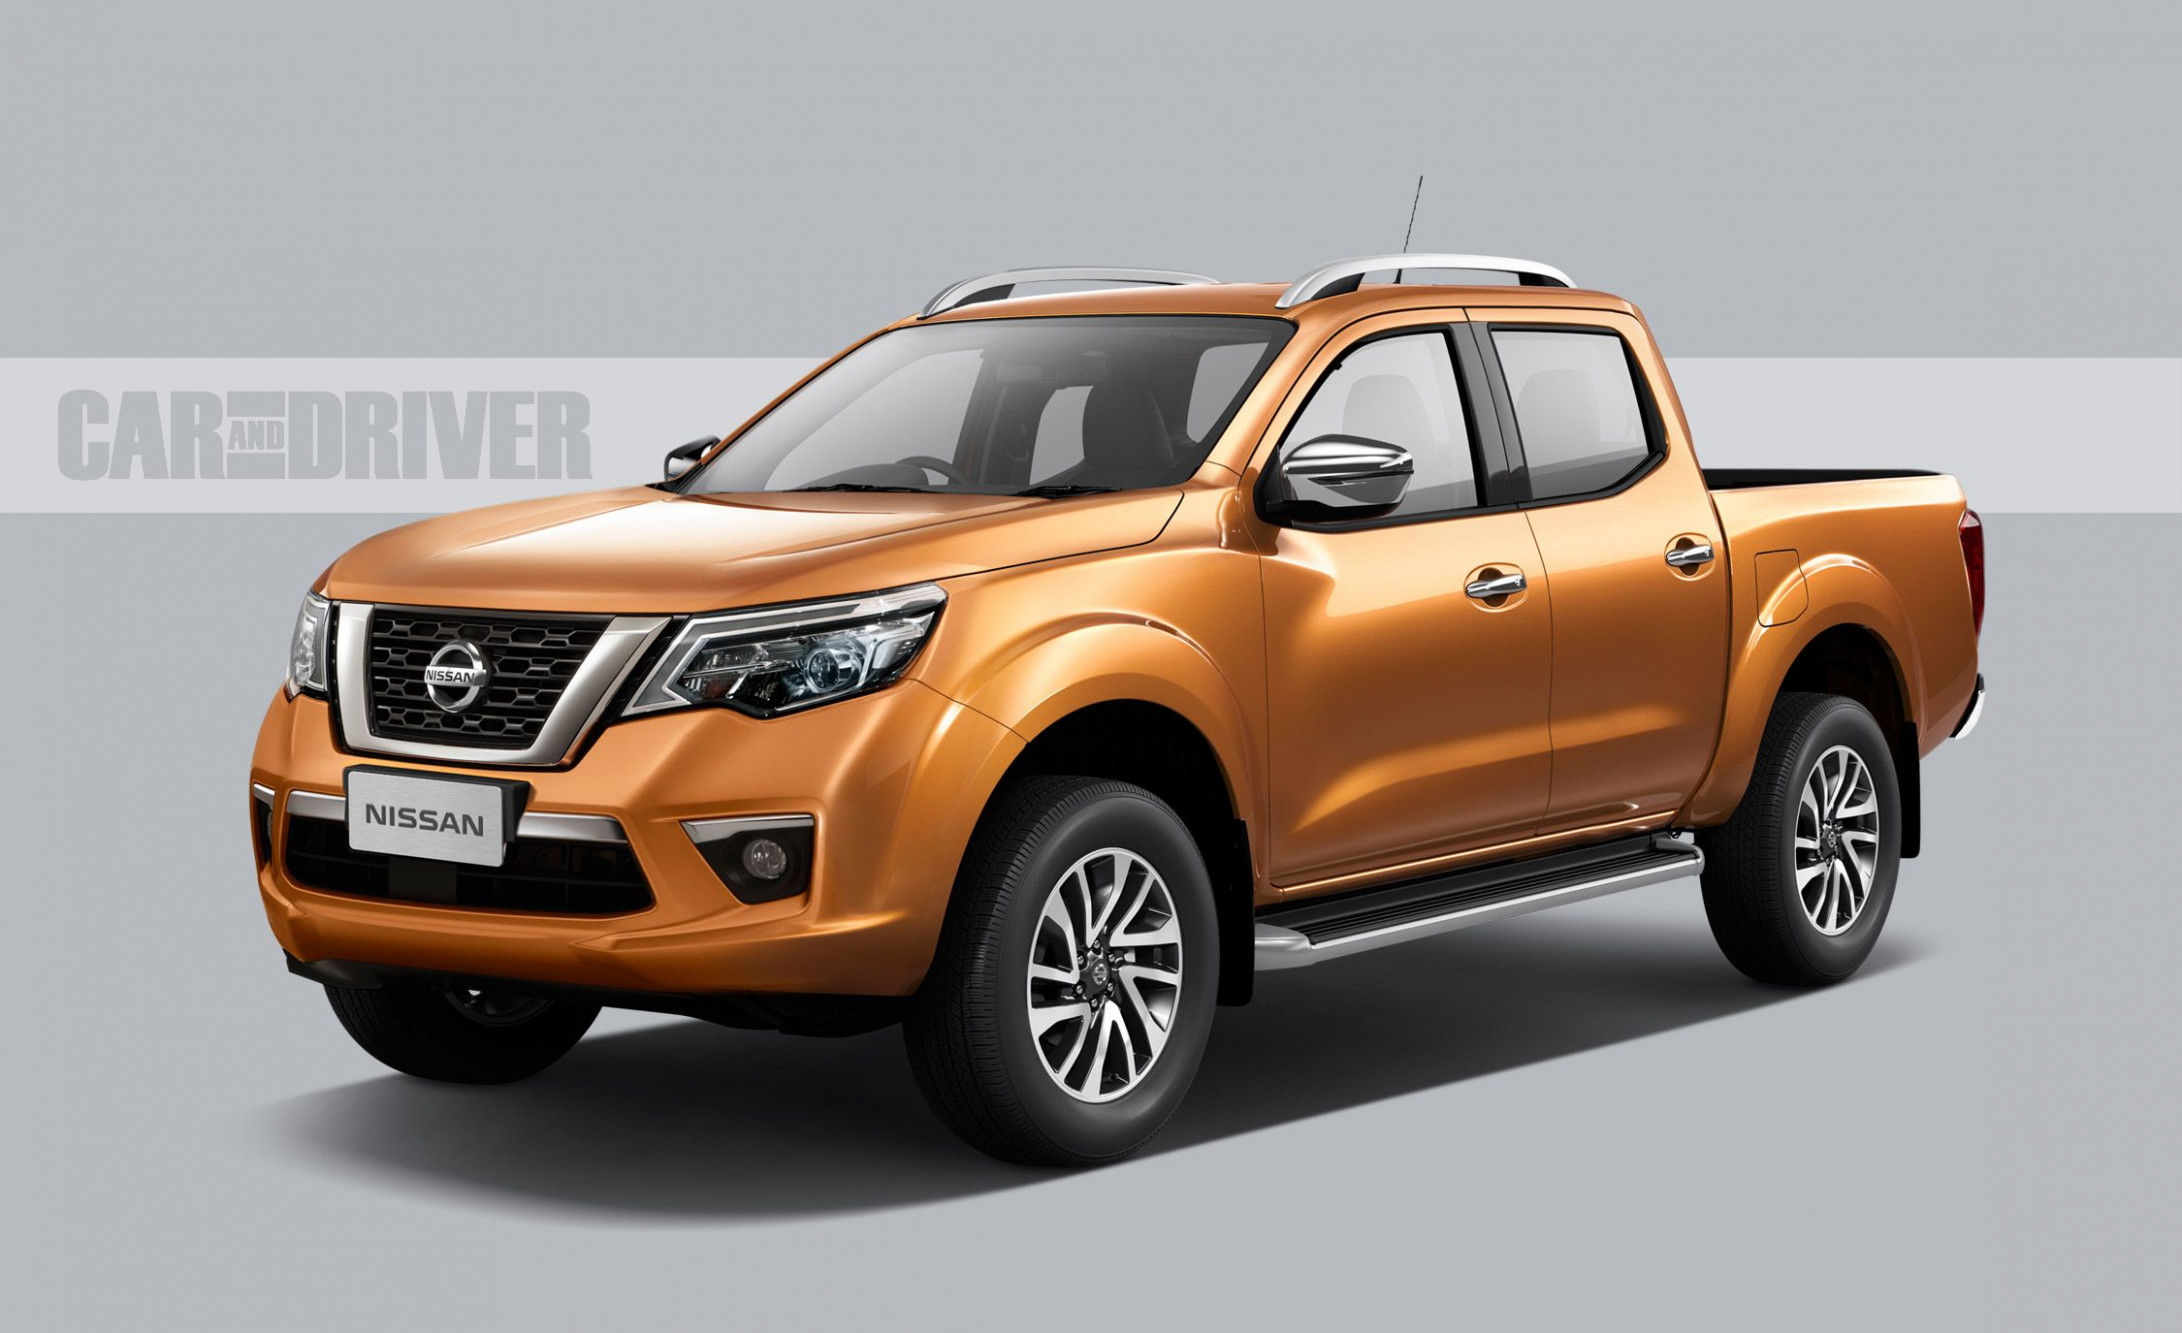 Ratings When Will The 2022 Nissan Frontier Be Available